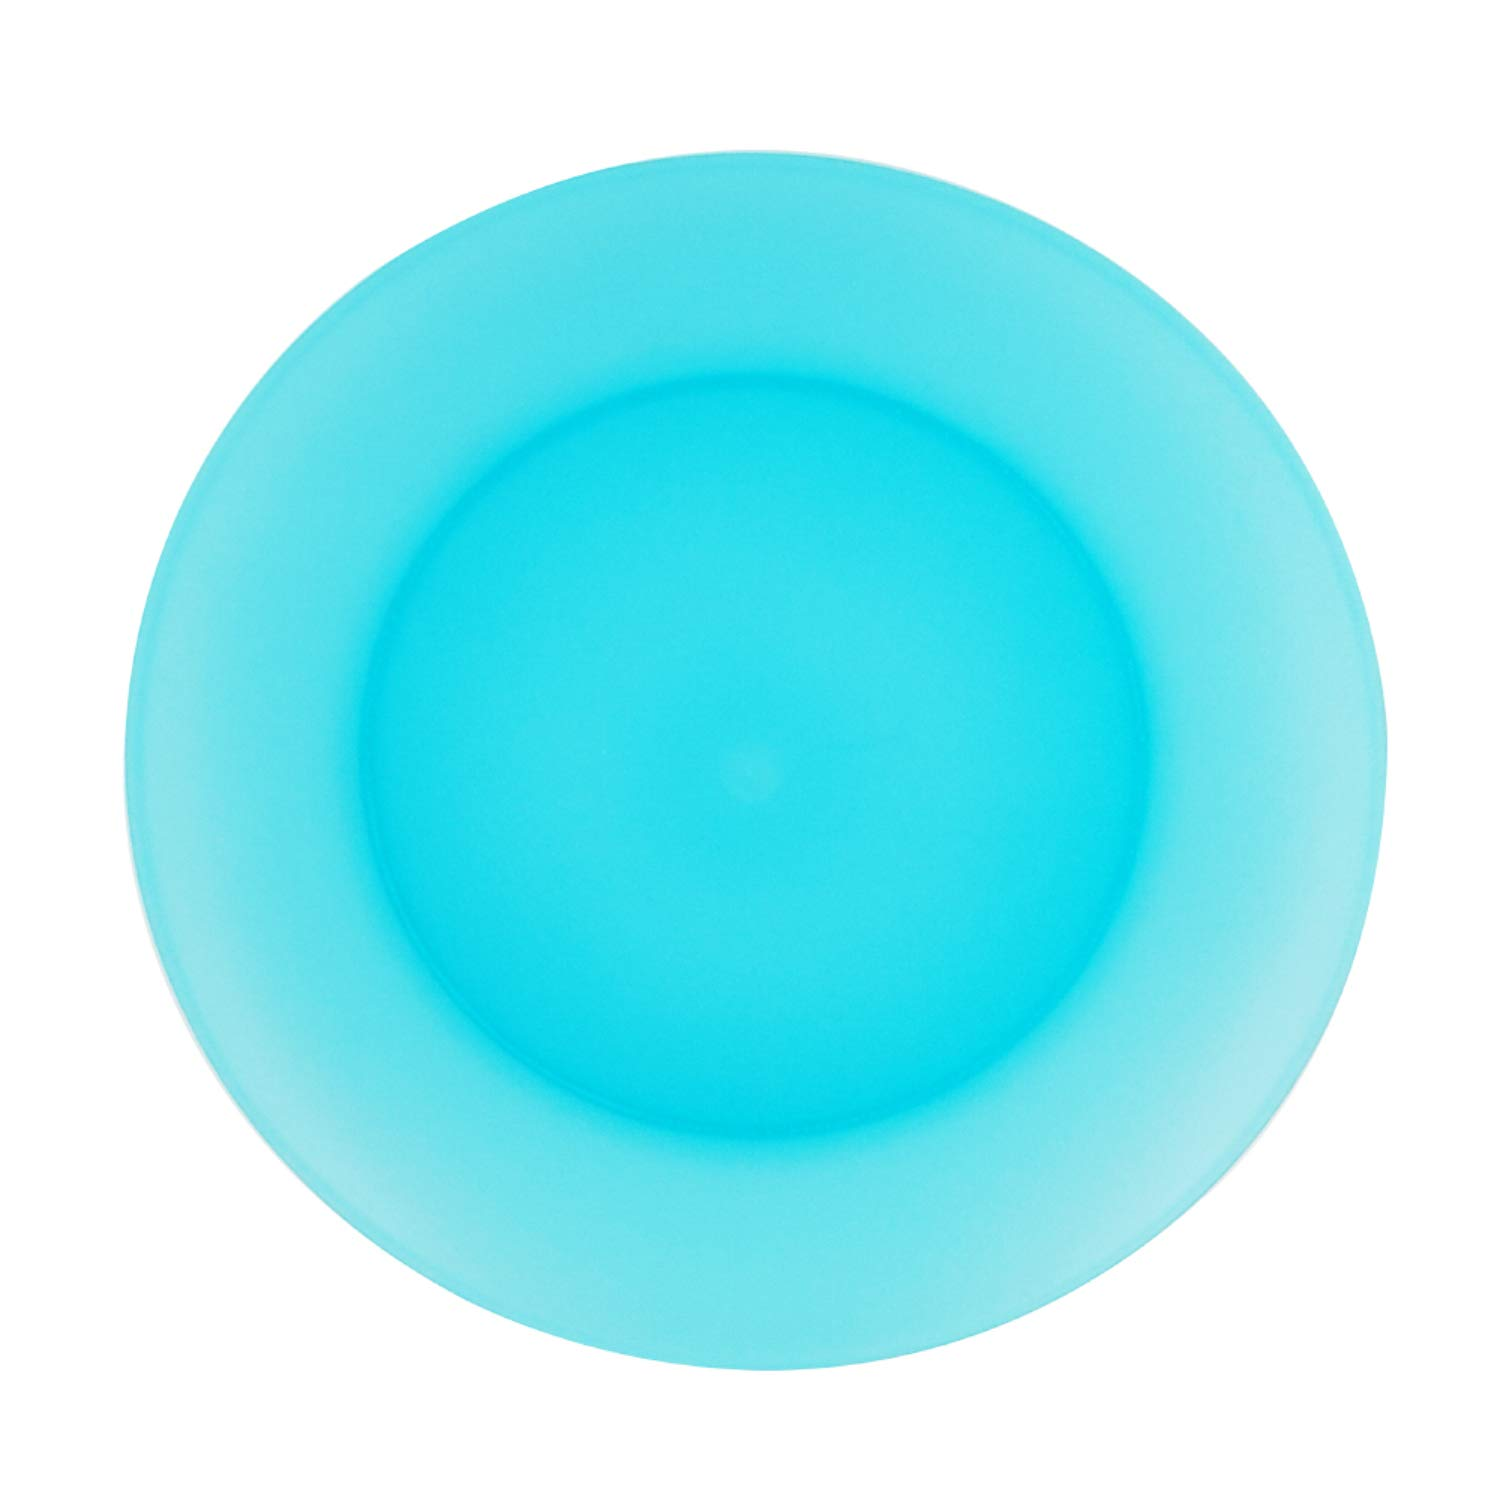 Plastic Dinner Plates Reusable BPA Free Dishwasher Safe 9.7 inch in 6 Assorted Colors Dinnerware Set of 12 By AOYITE